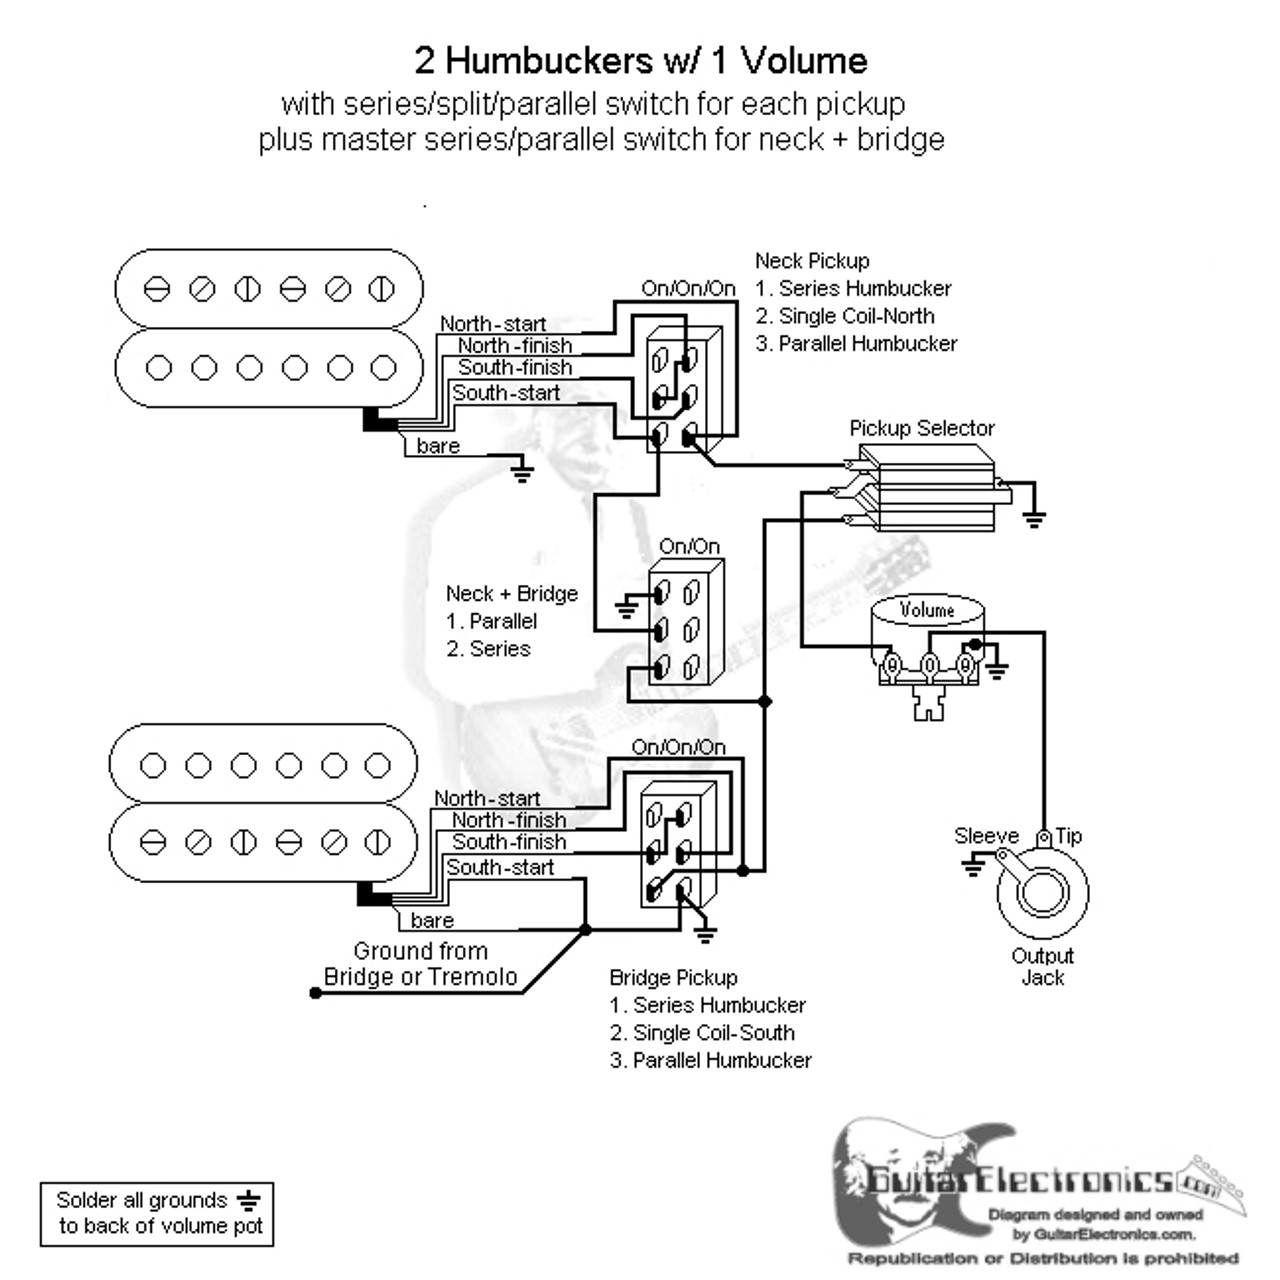 switch wiring diagram  2 hbs 3 way toggle 1 vol series split parallel  \u0026 master series parallel 3